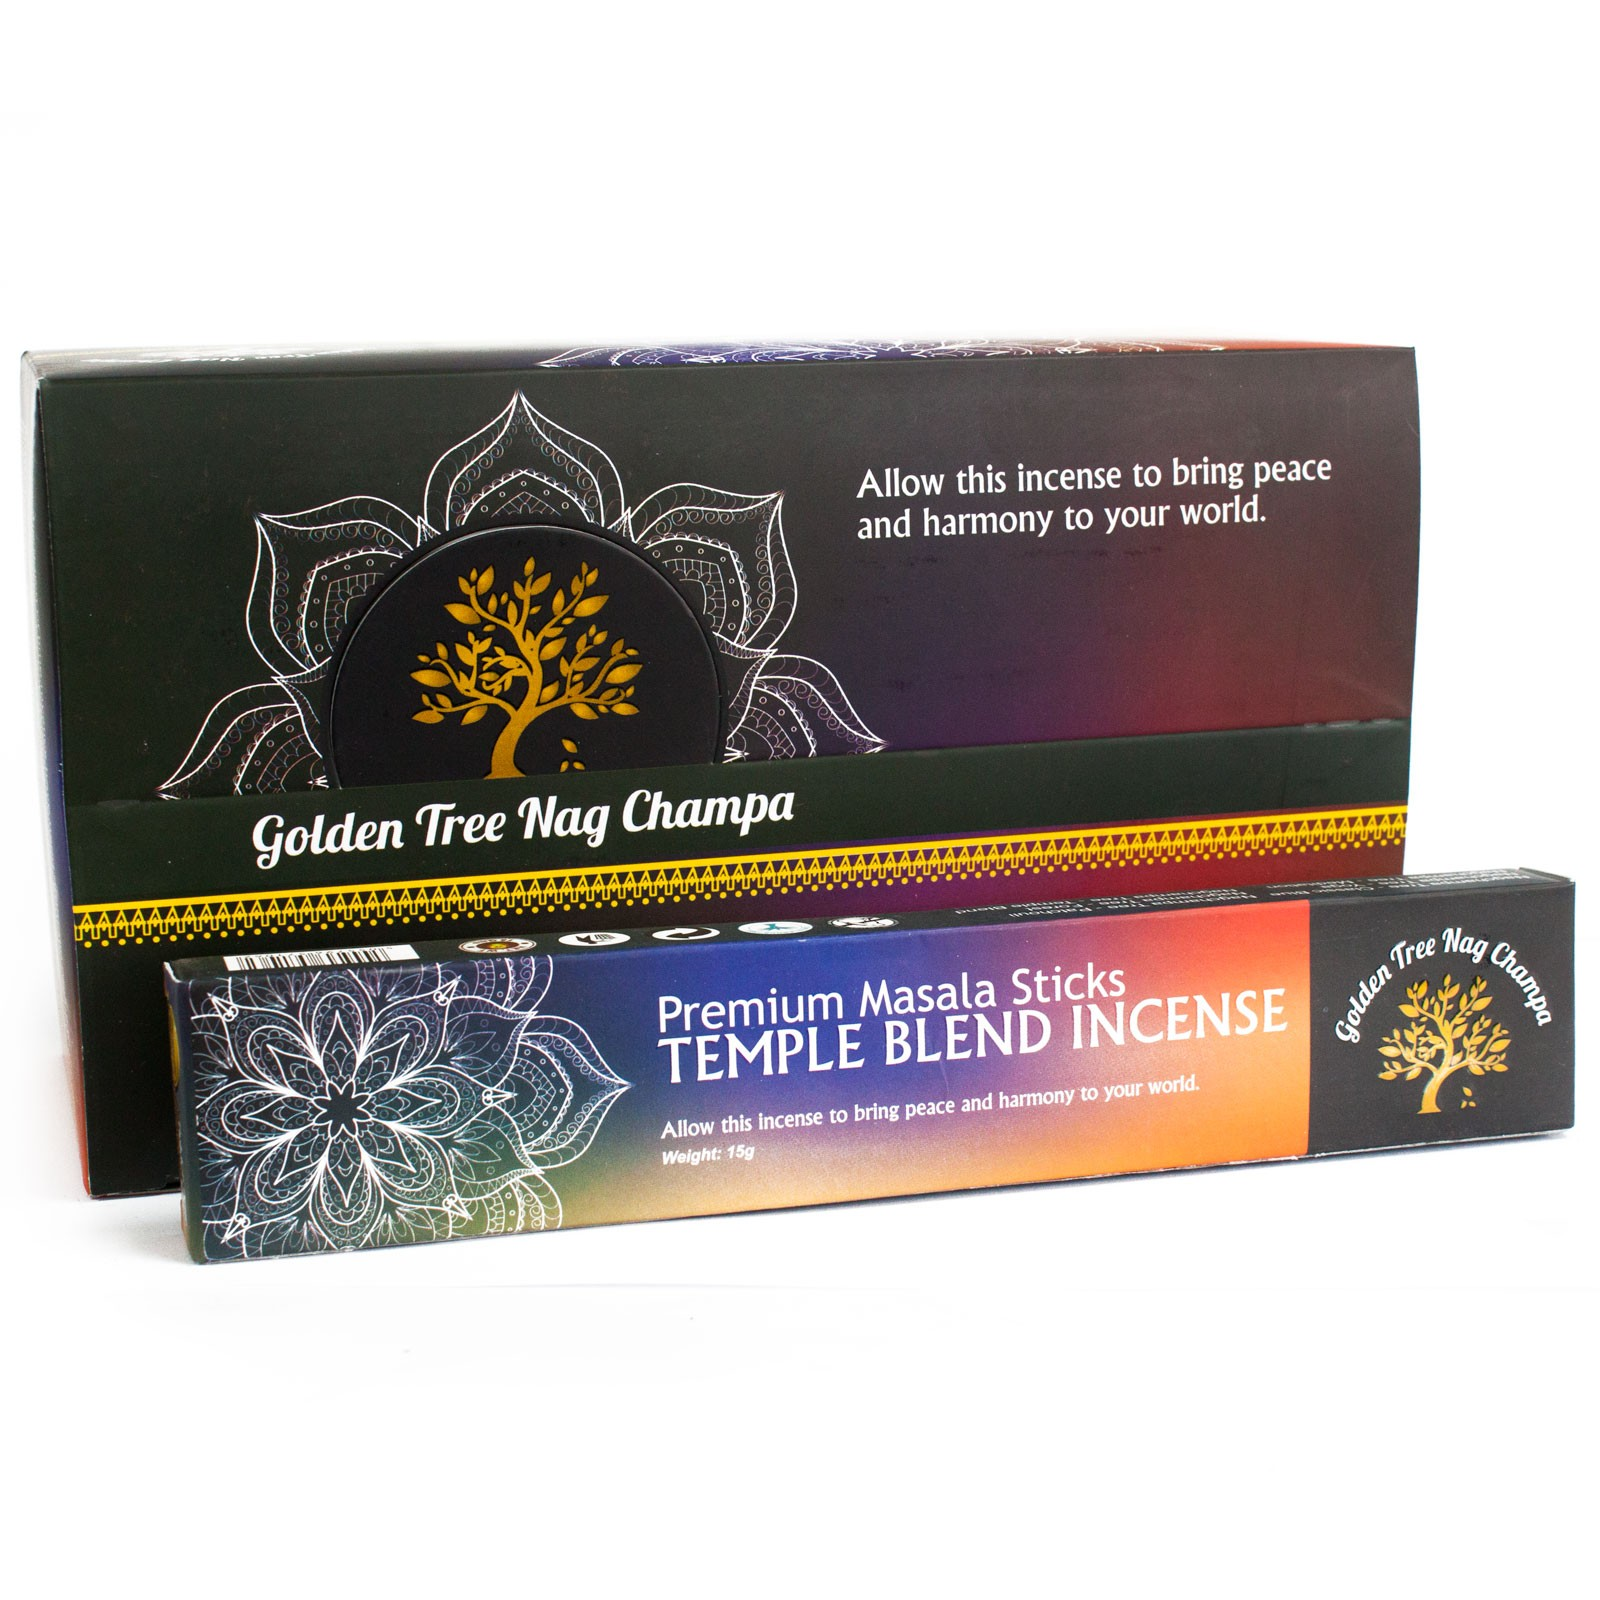 Golden Tree Nag Champa Incense Temple Blend